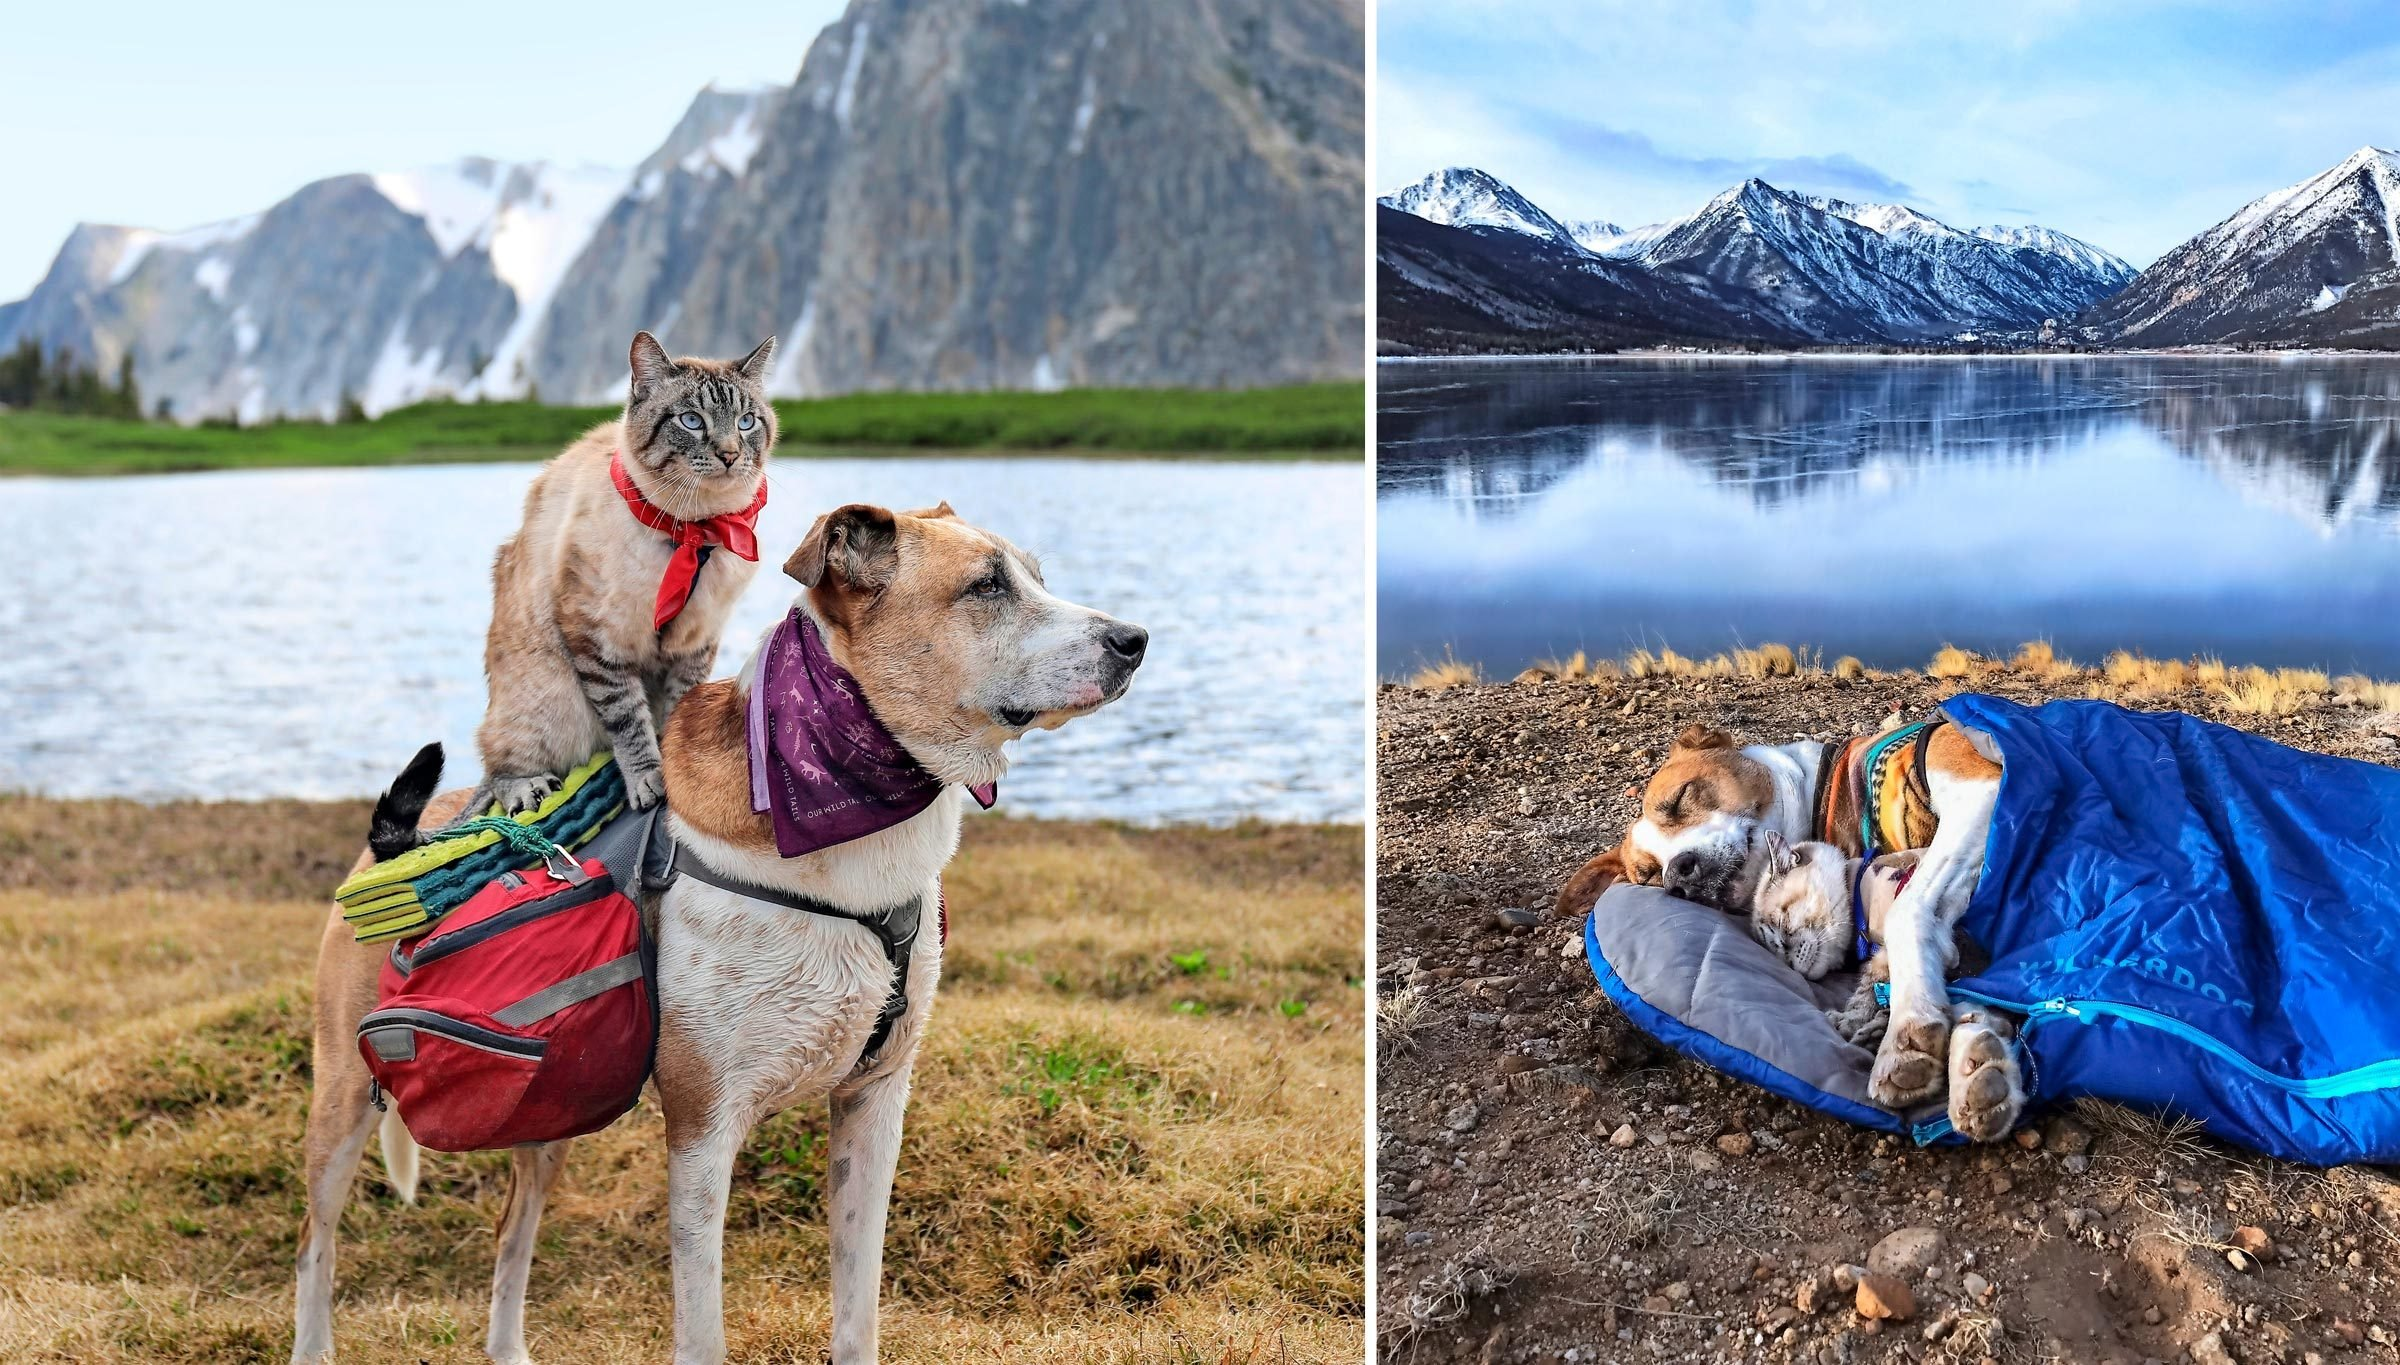 Henry with Baloo and a pack on his back; Henry and Baloo cuddle in a sleeping bag